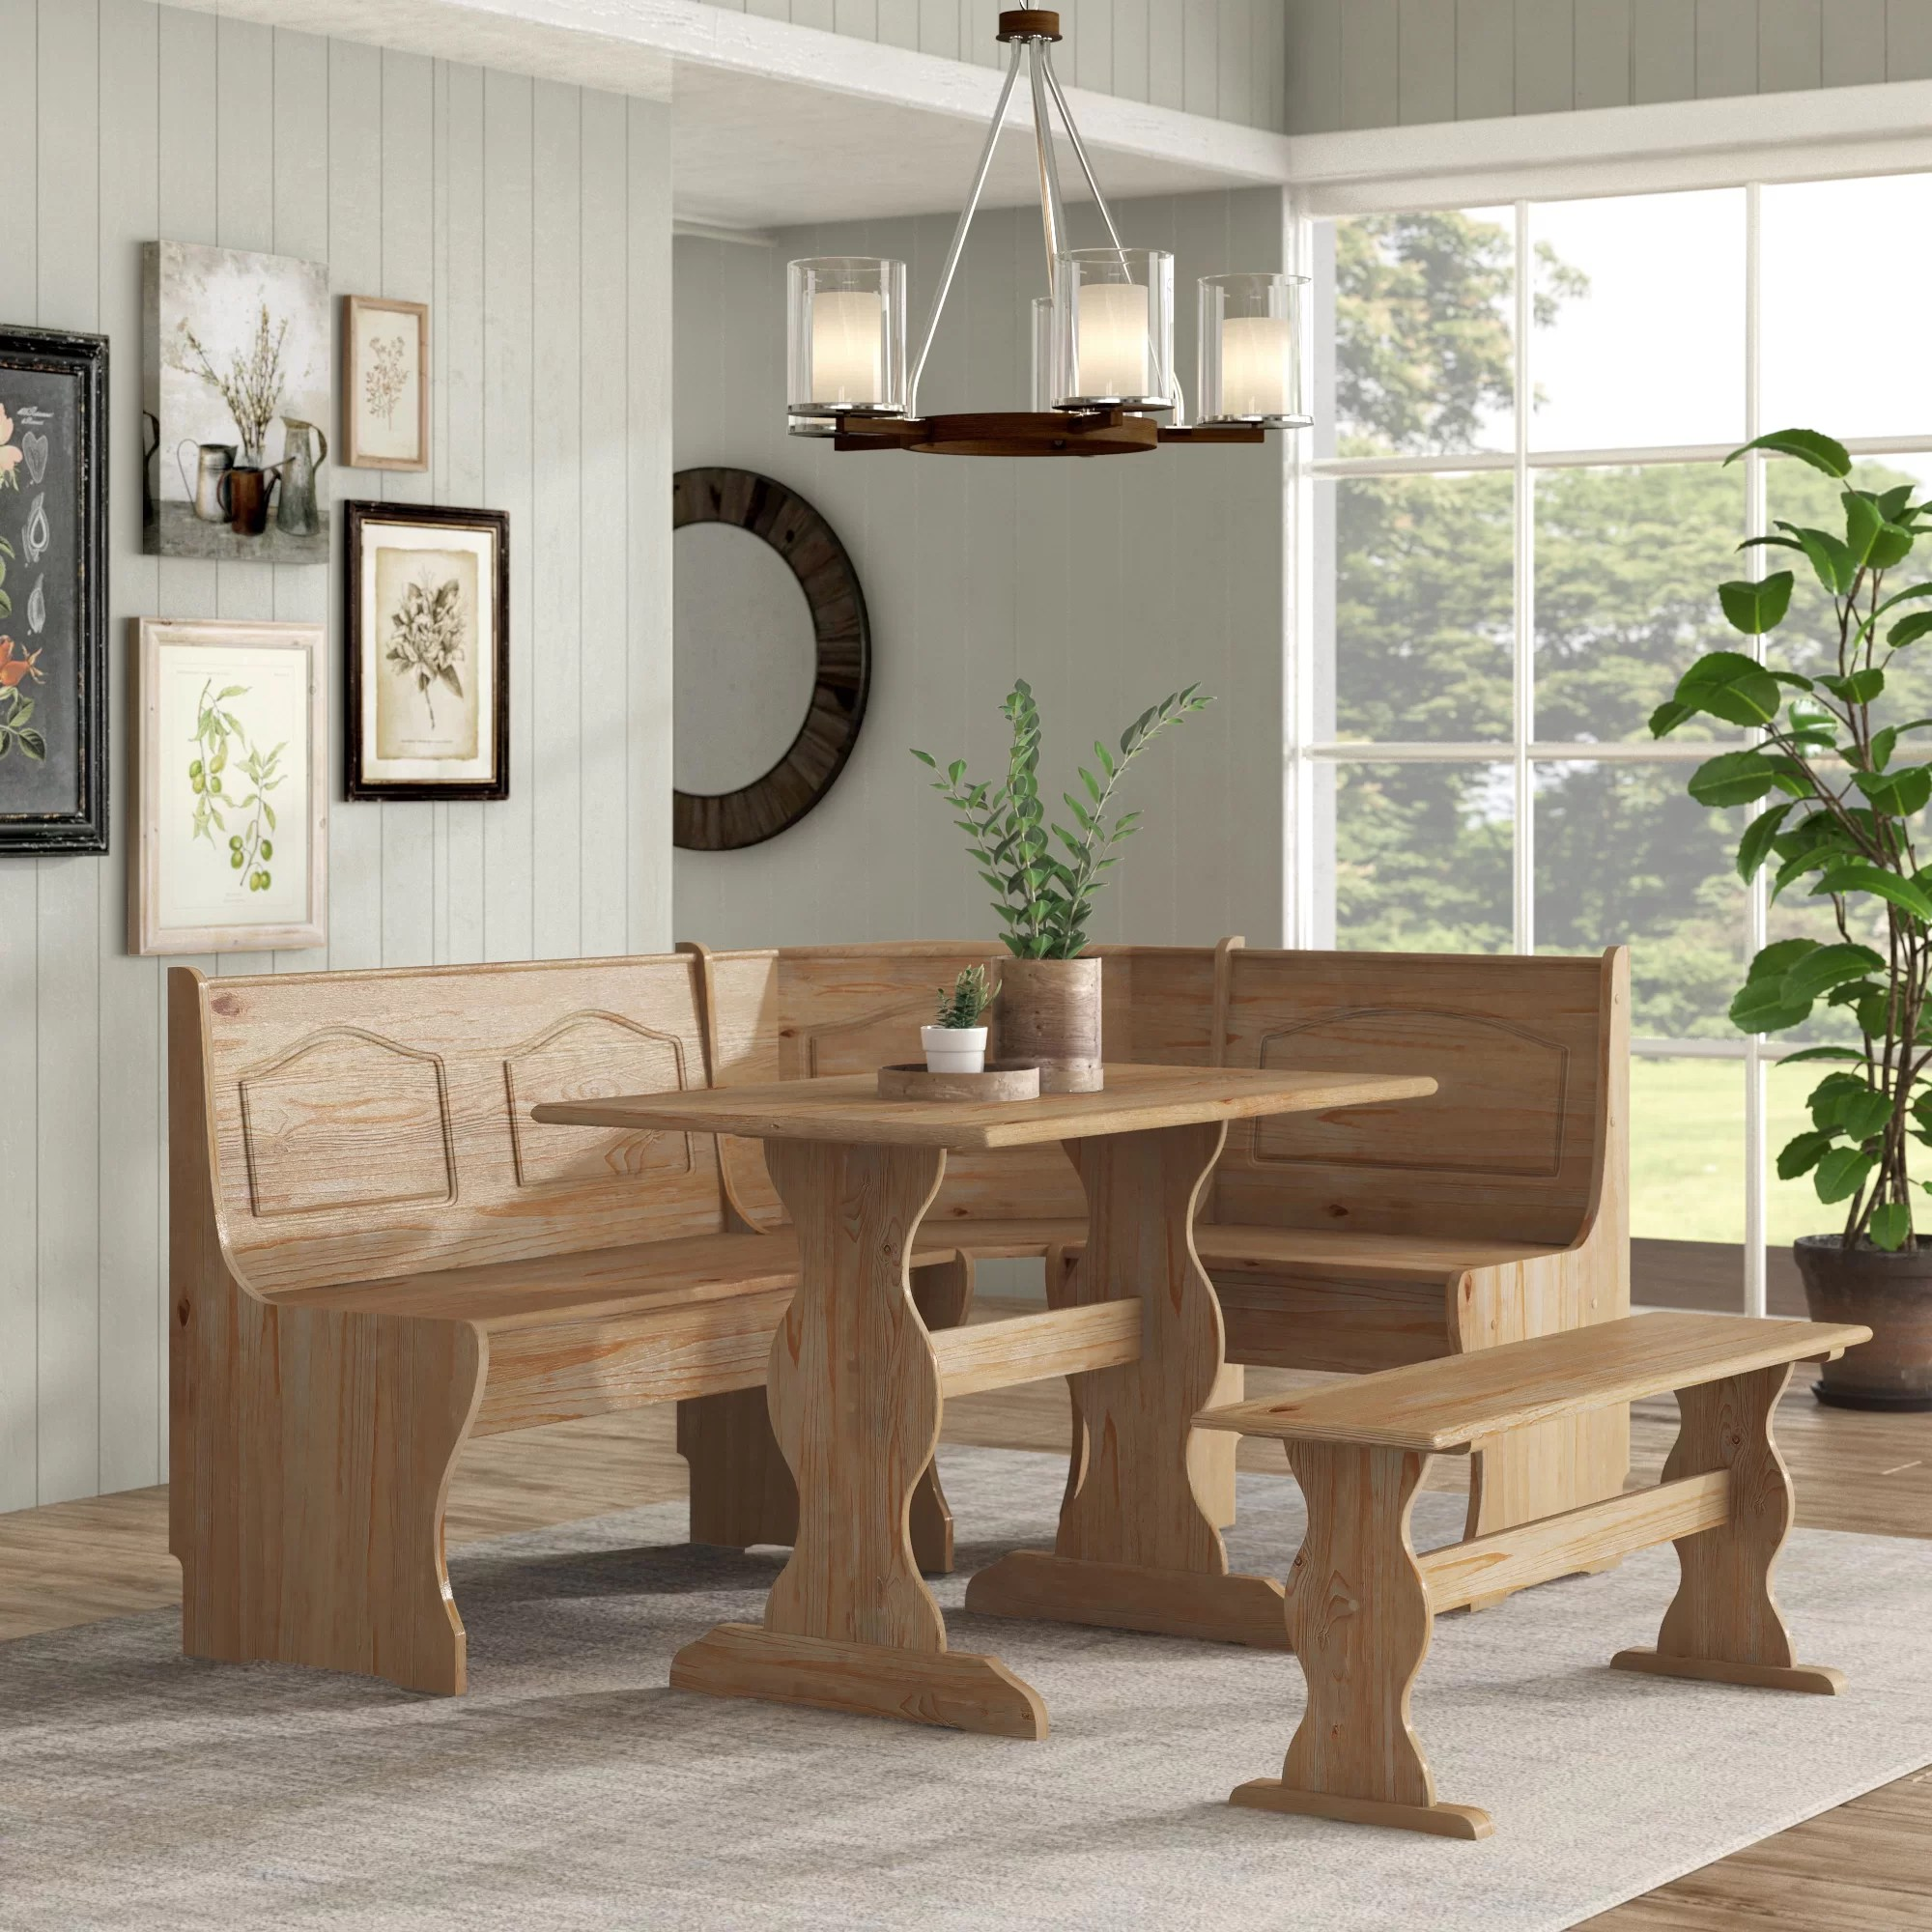 Breakfast Kitchen Nook Solid Wood Seat Dining Corner Bench Chelsea Cushion Set Dining Sets